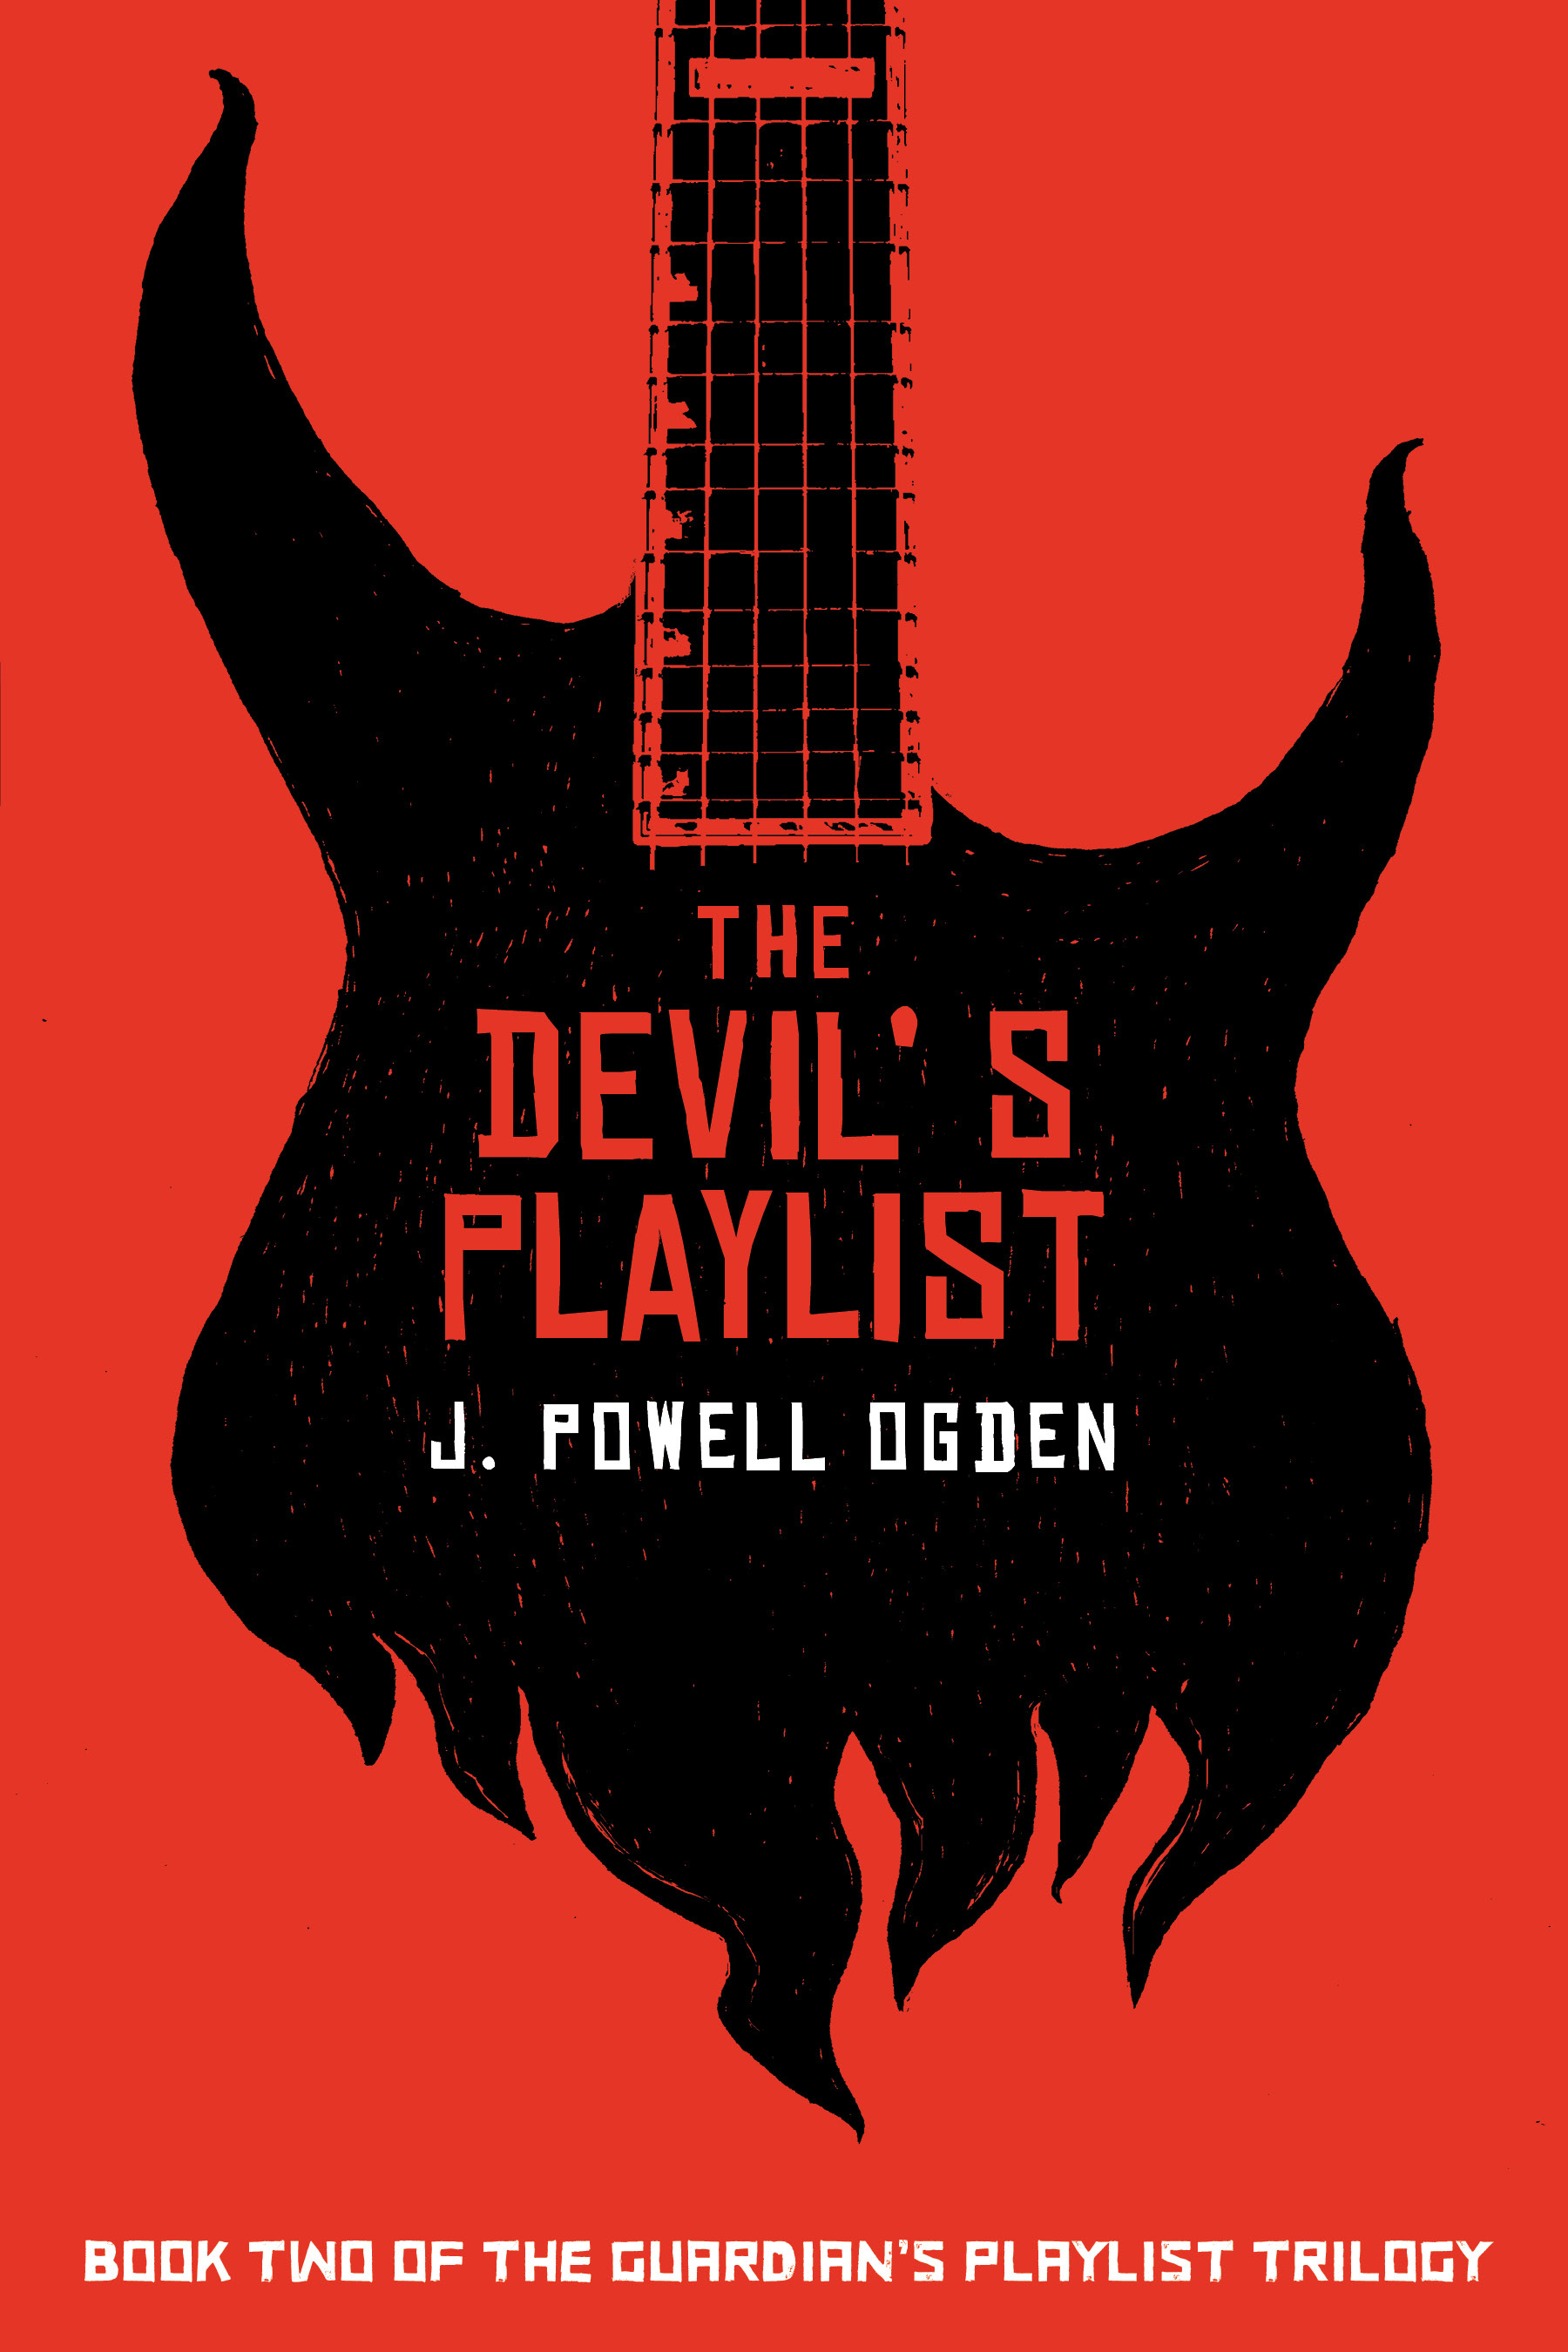 BOOK TWO of The Guardian's Playlist Trilogy